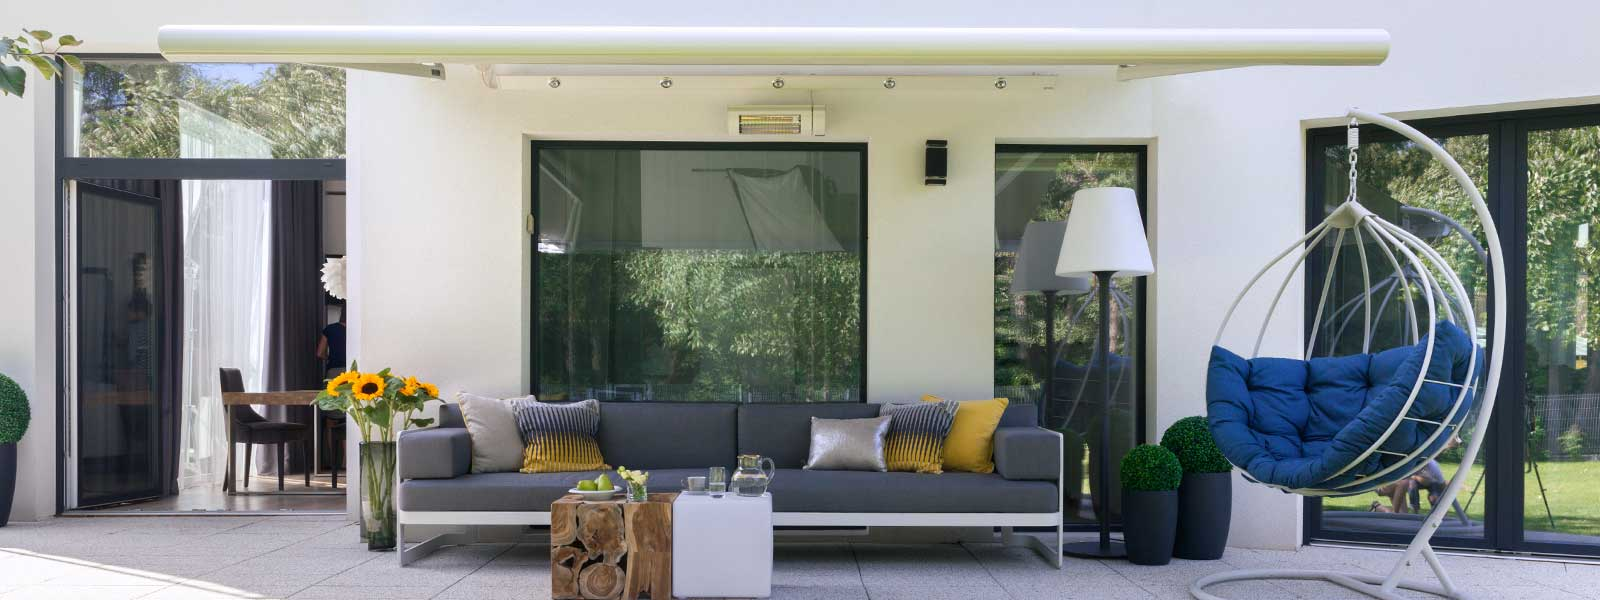 Markilux Awnings